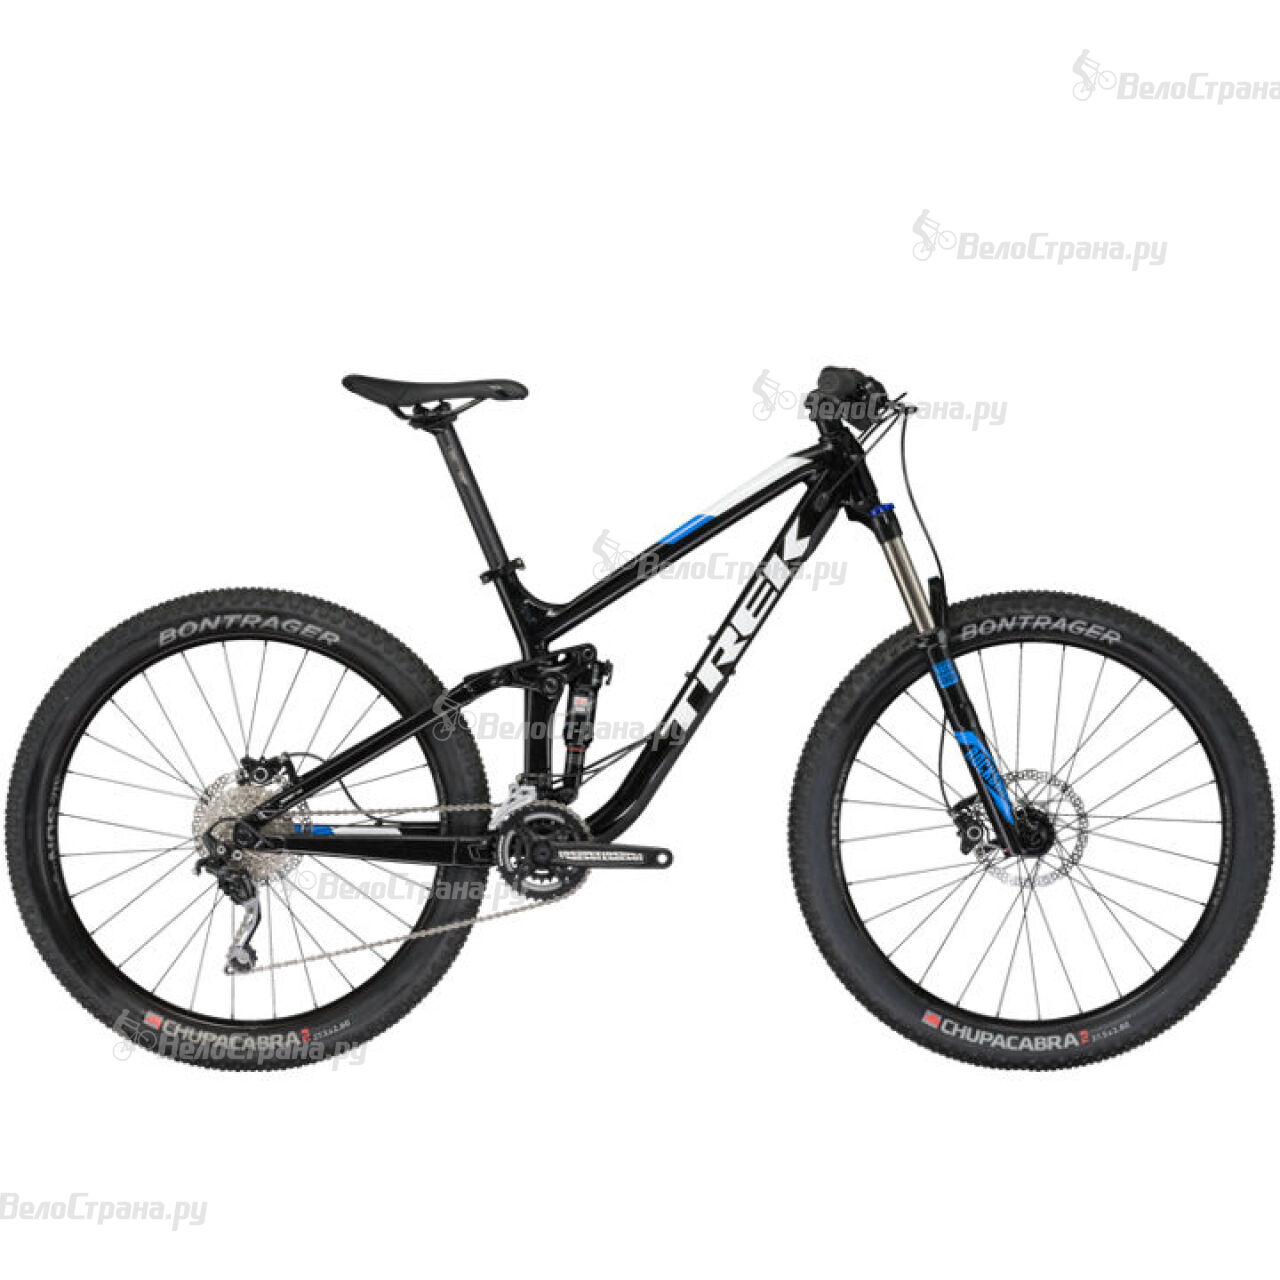 Велосипед Trek Fuel EX 5 27.5 PLUS (2017) велосипед trek fuel ex 9 29 2017